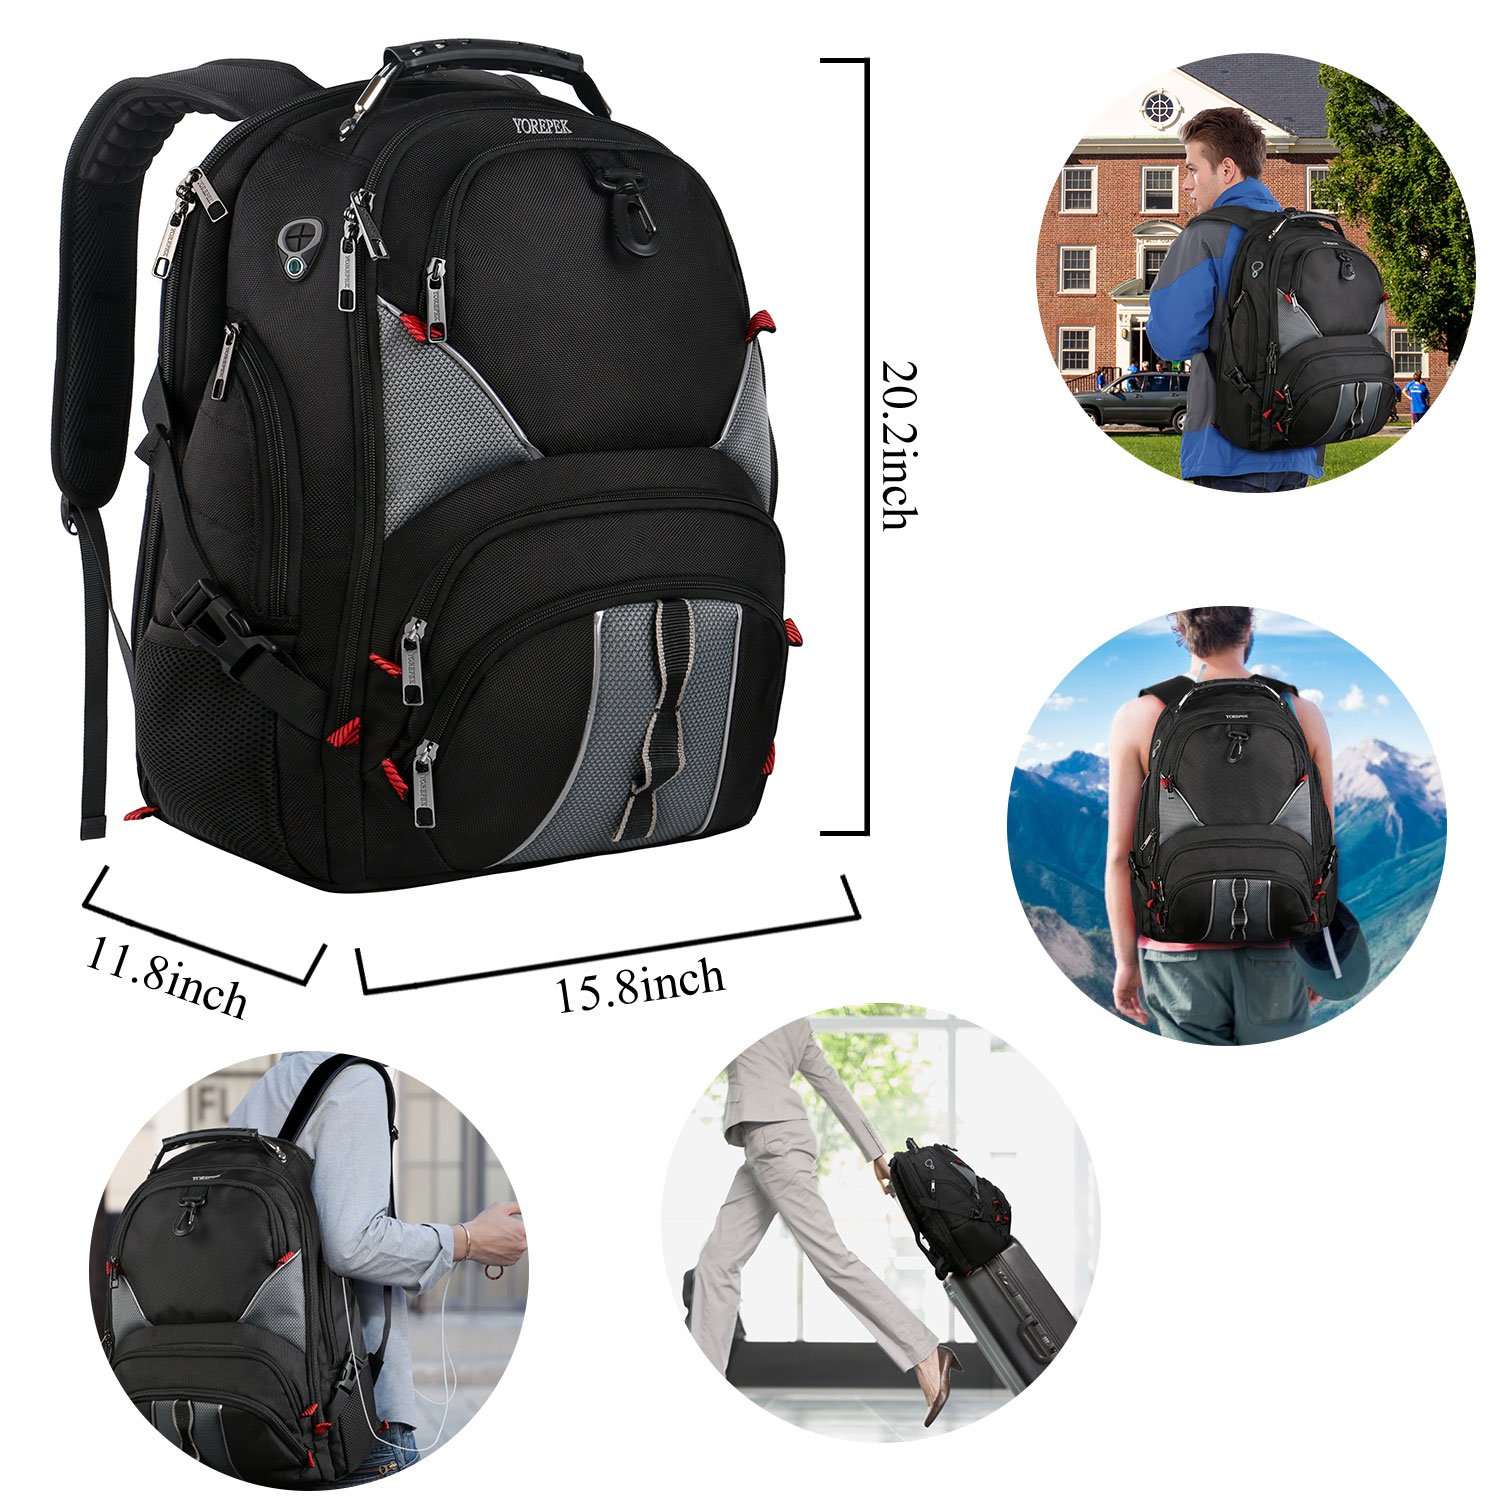 17 inch Laptop Backpack,Large Travel Backpack,TSA Friendly Durable Computer Bagpack with Luggage Sleeve for Men Women, Water Resistant Business College School Bag with USB Charger Port, Black by YOREPEK (Image #7)